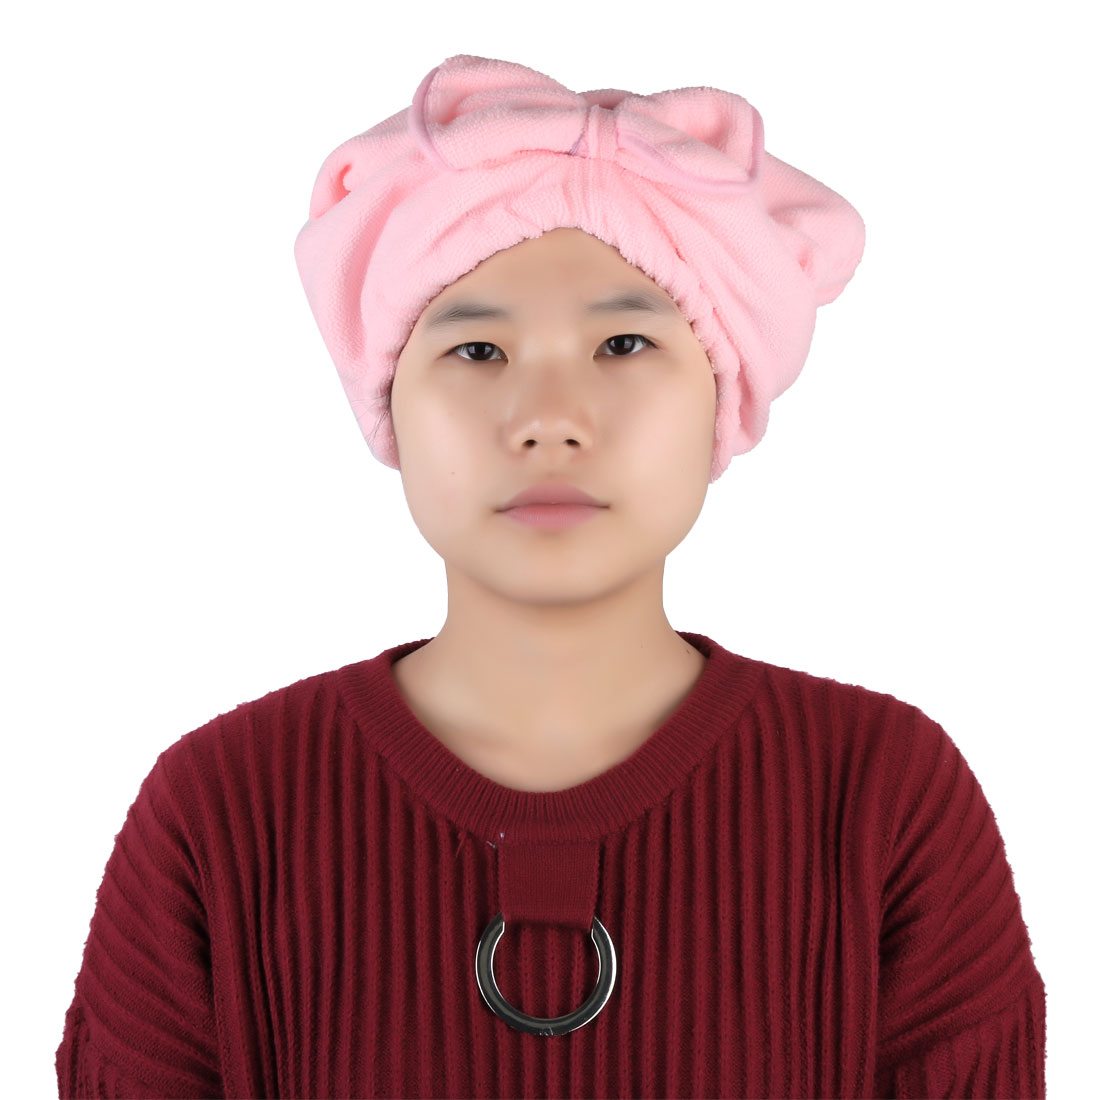 Women Bathroom Spa Microfiber Bowknot Decor Elastic Band Dry Hair Cap Pink